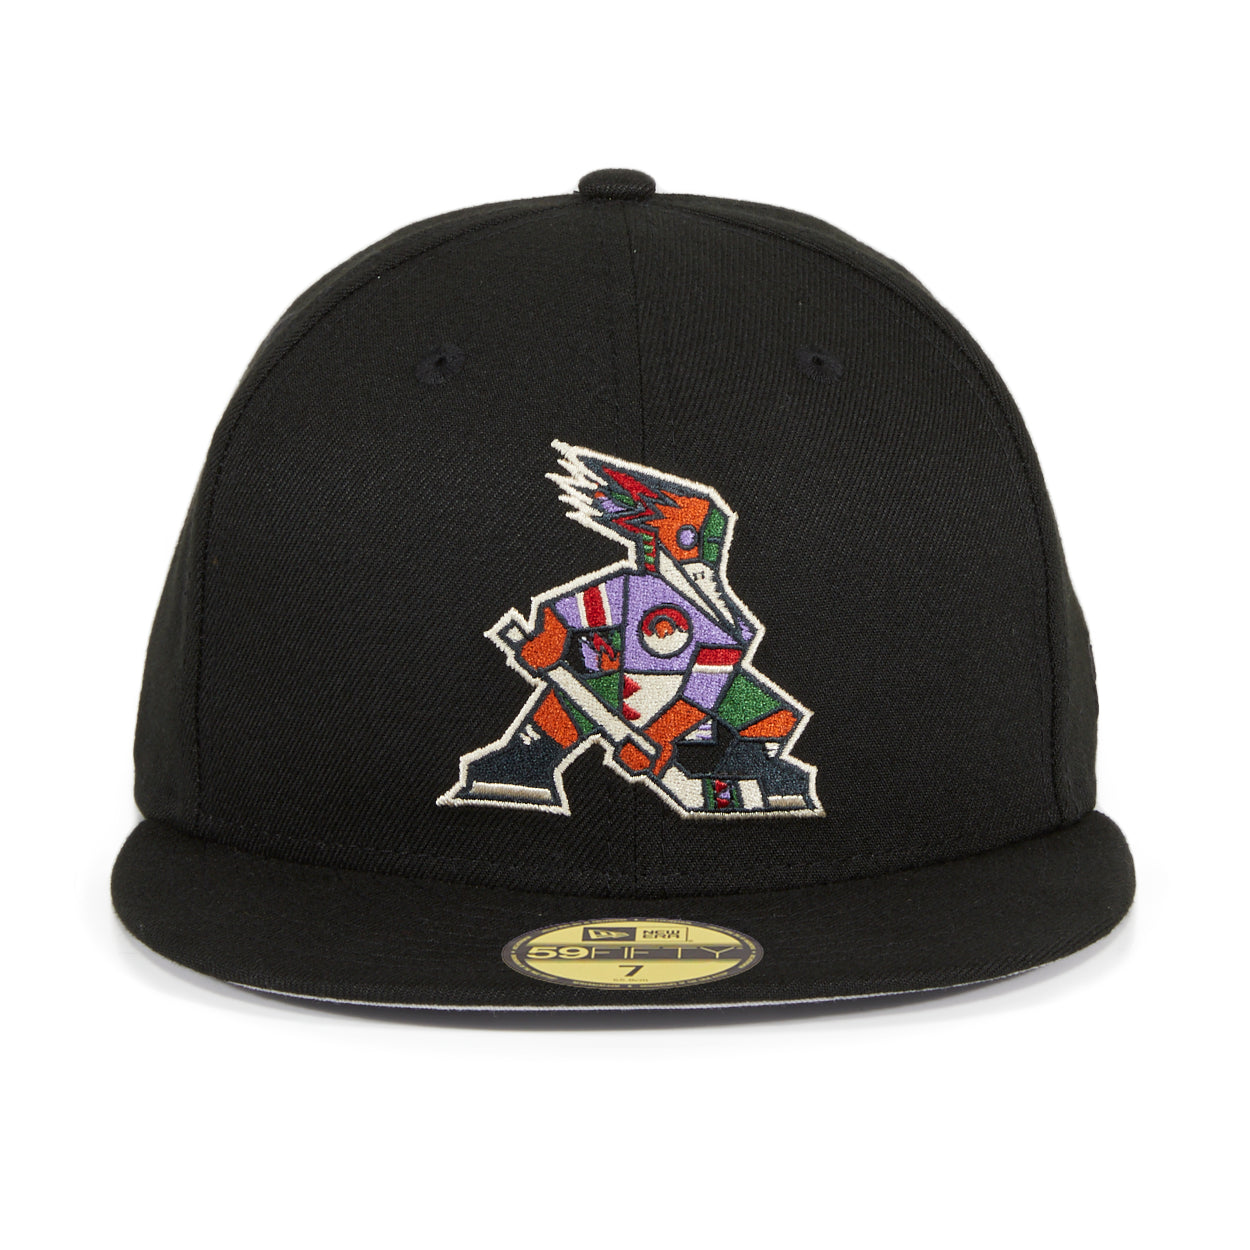 Exclusive 59Fifty Tucson Roadrunners Alternate Hat - Black